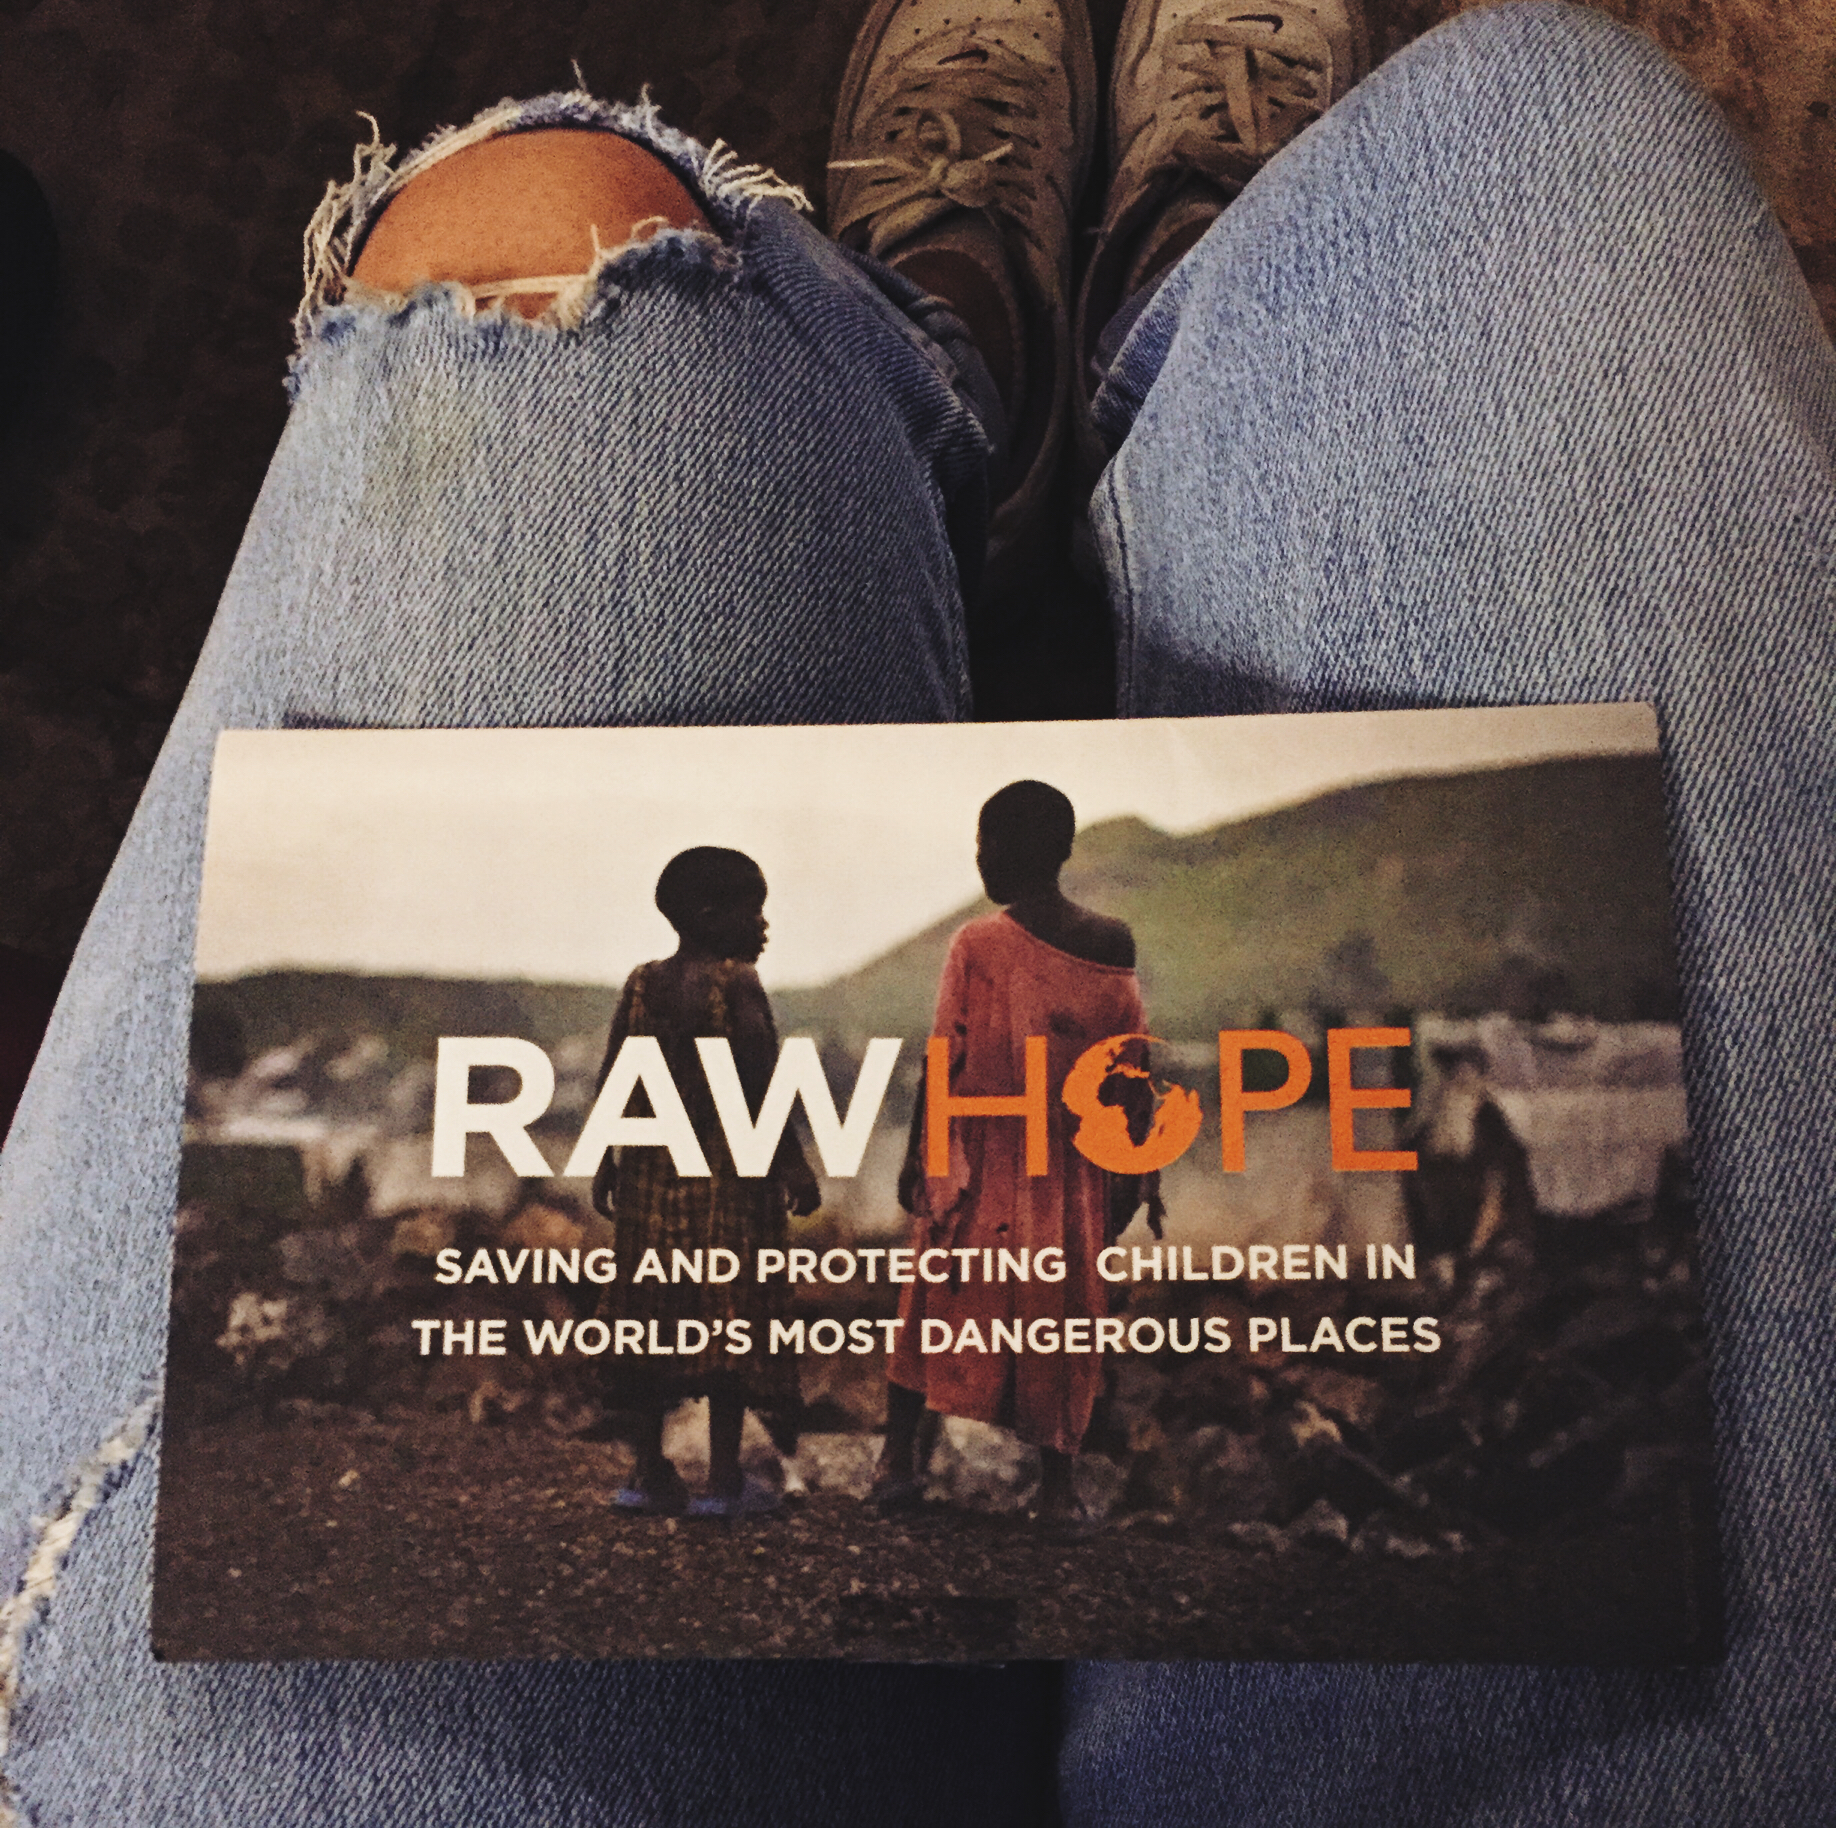 The Raw Hope flyer/donation card on my lap.